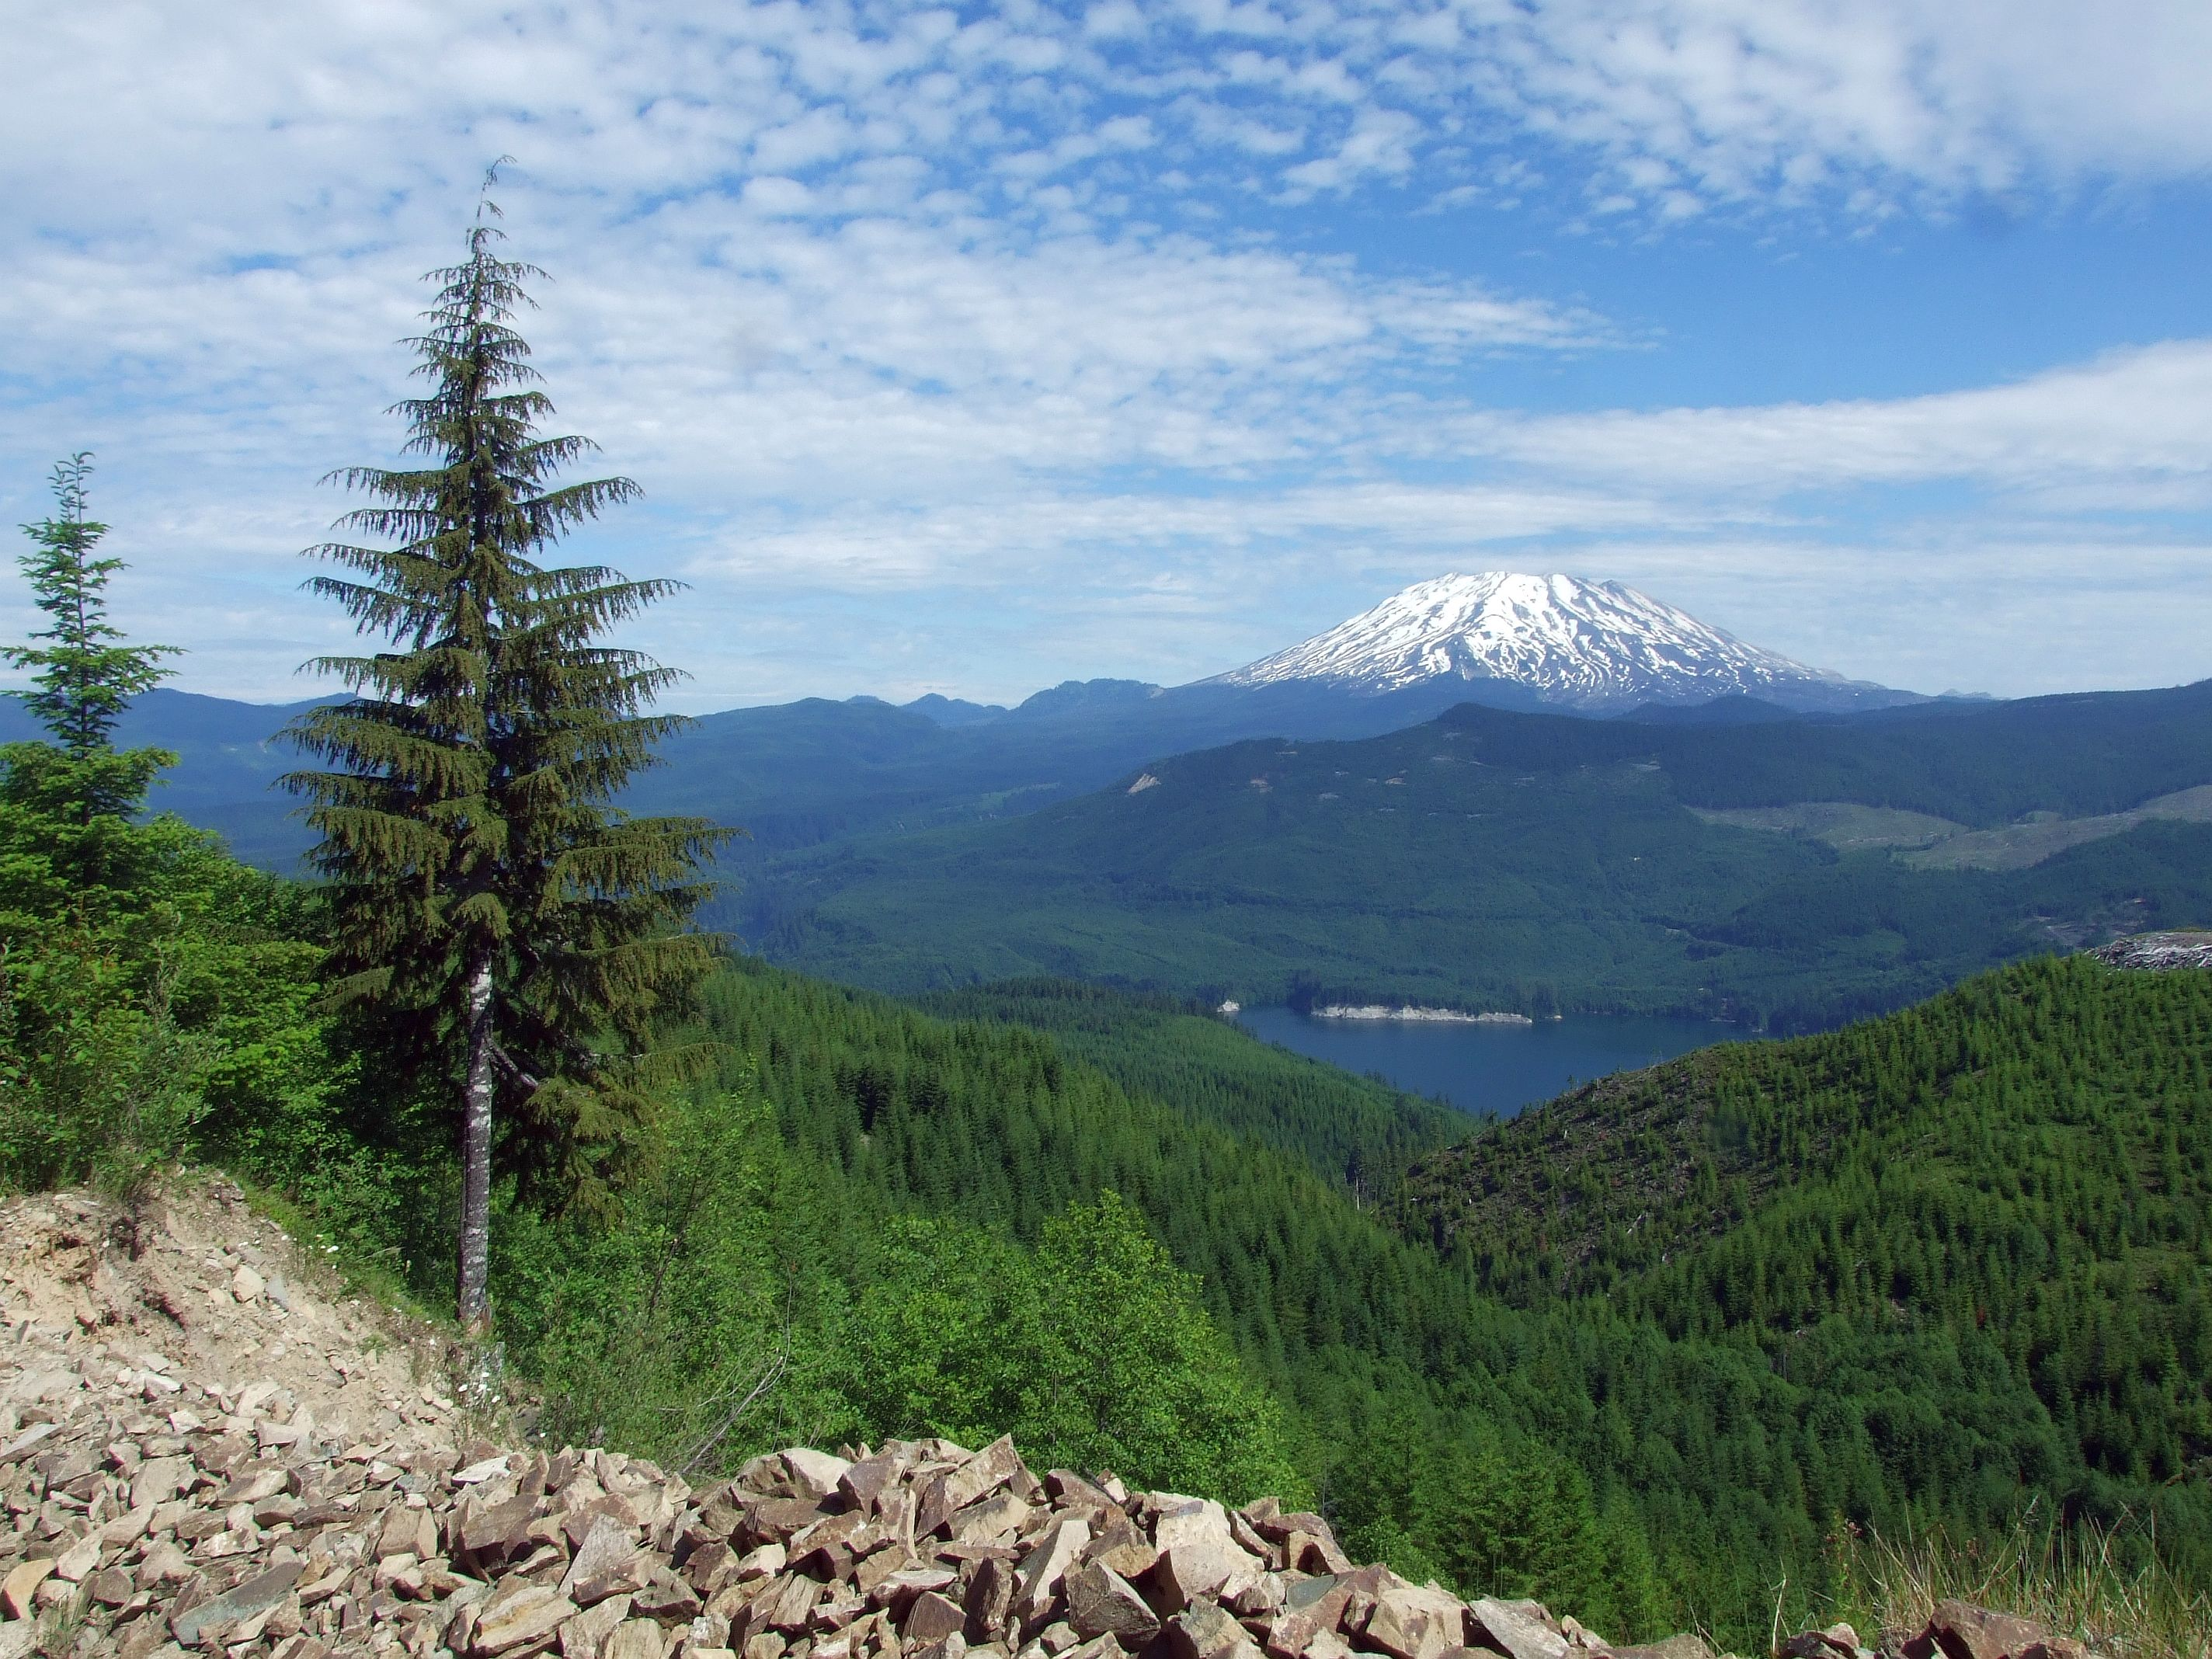 Pope_Resource_Lands_-_Mt._St._Helens_-_Columbia_Land_Trust.jpg